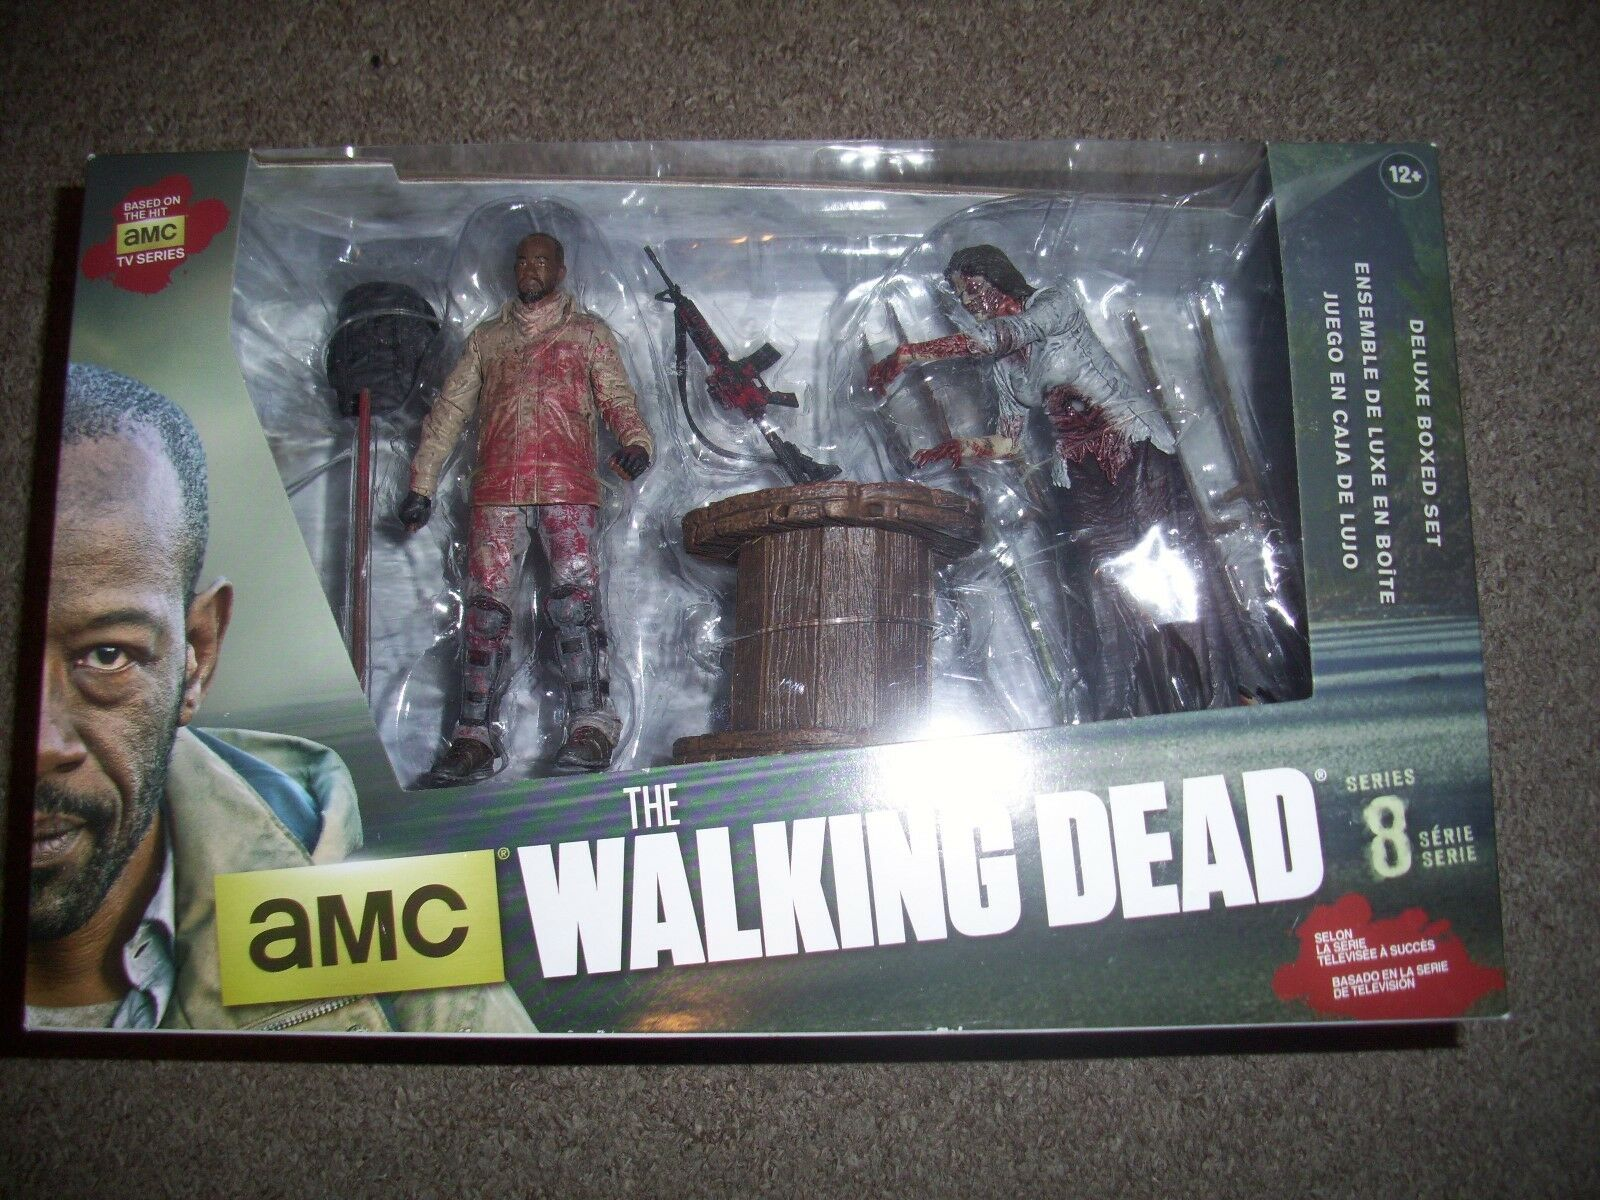 The walking dead figures 8 SERIES DELUXE BOXSED SET. still sealed